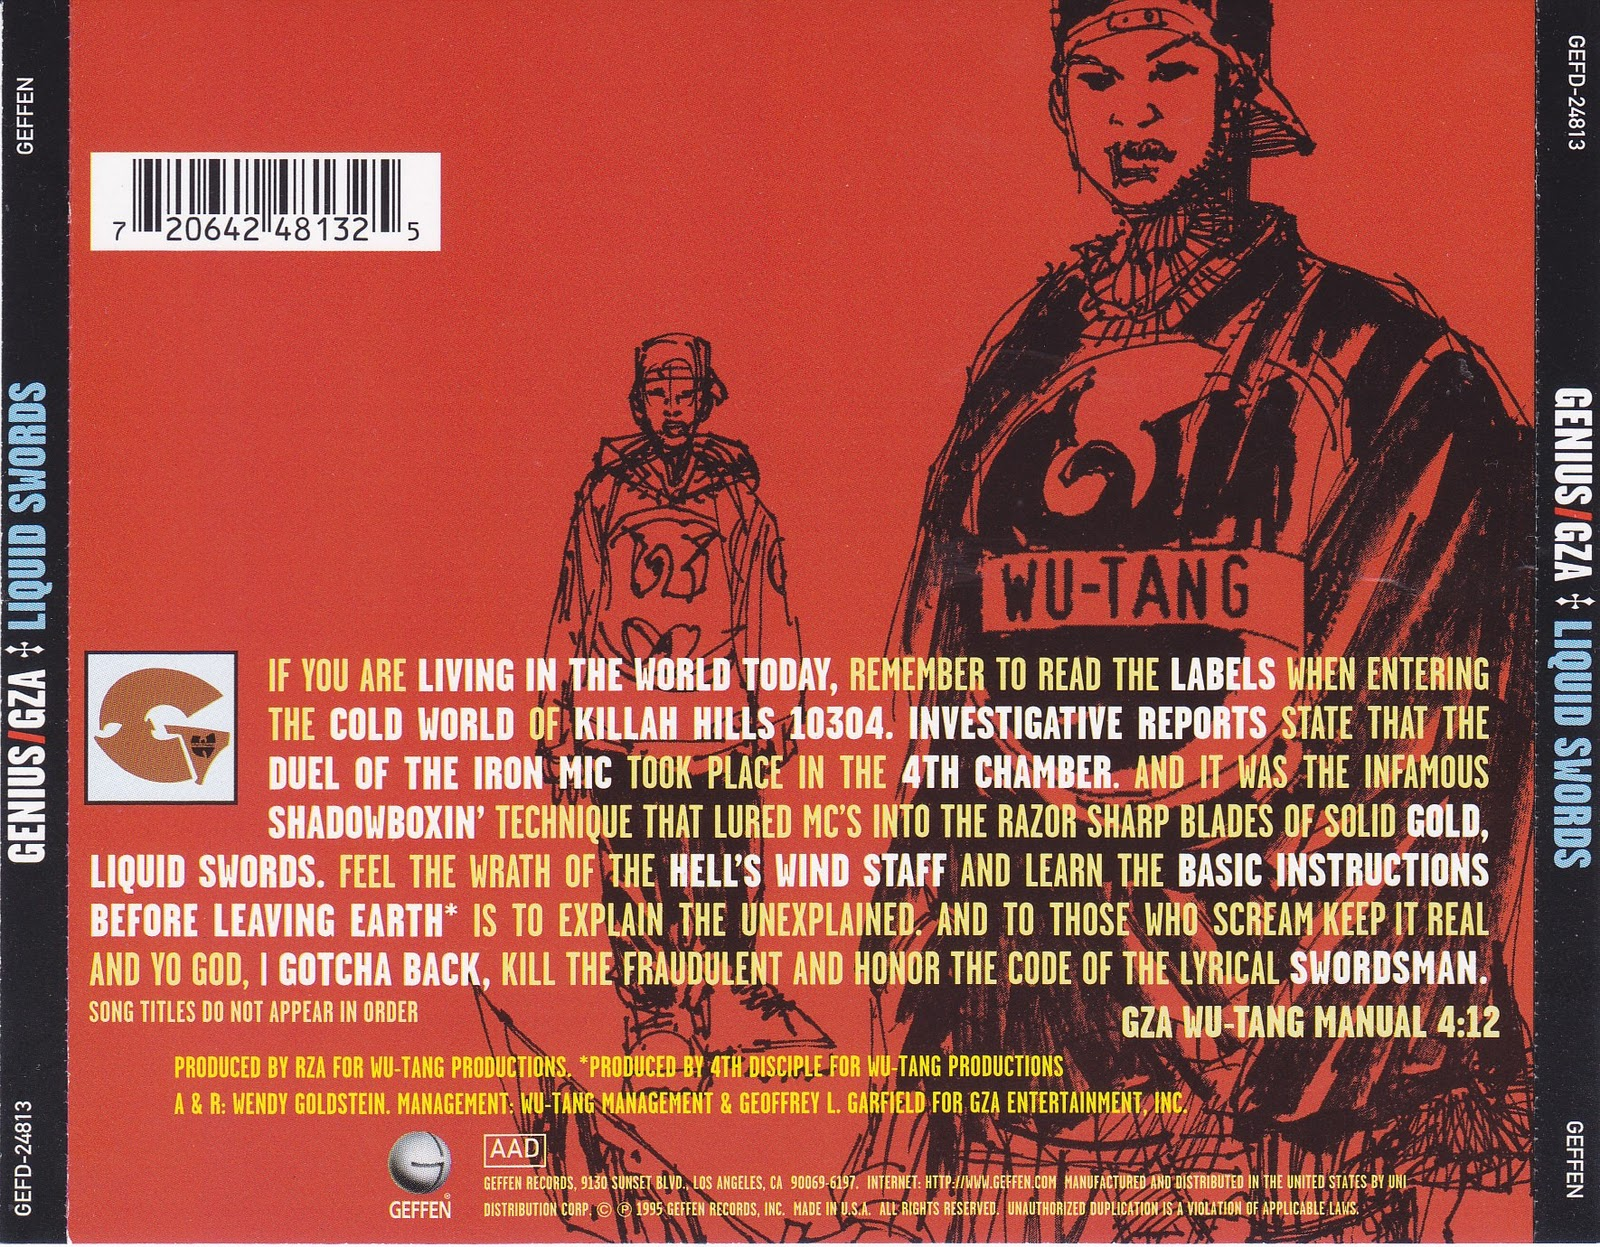 [AllCDCovers]_gza_genius_liquid_swords_1995_retail_cd-back